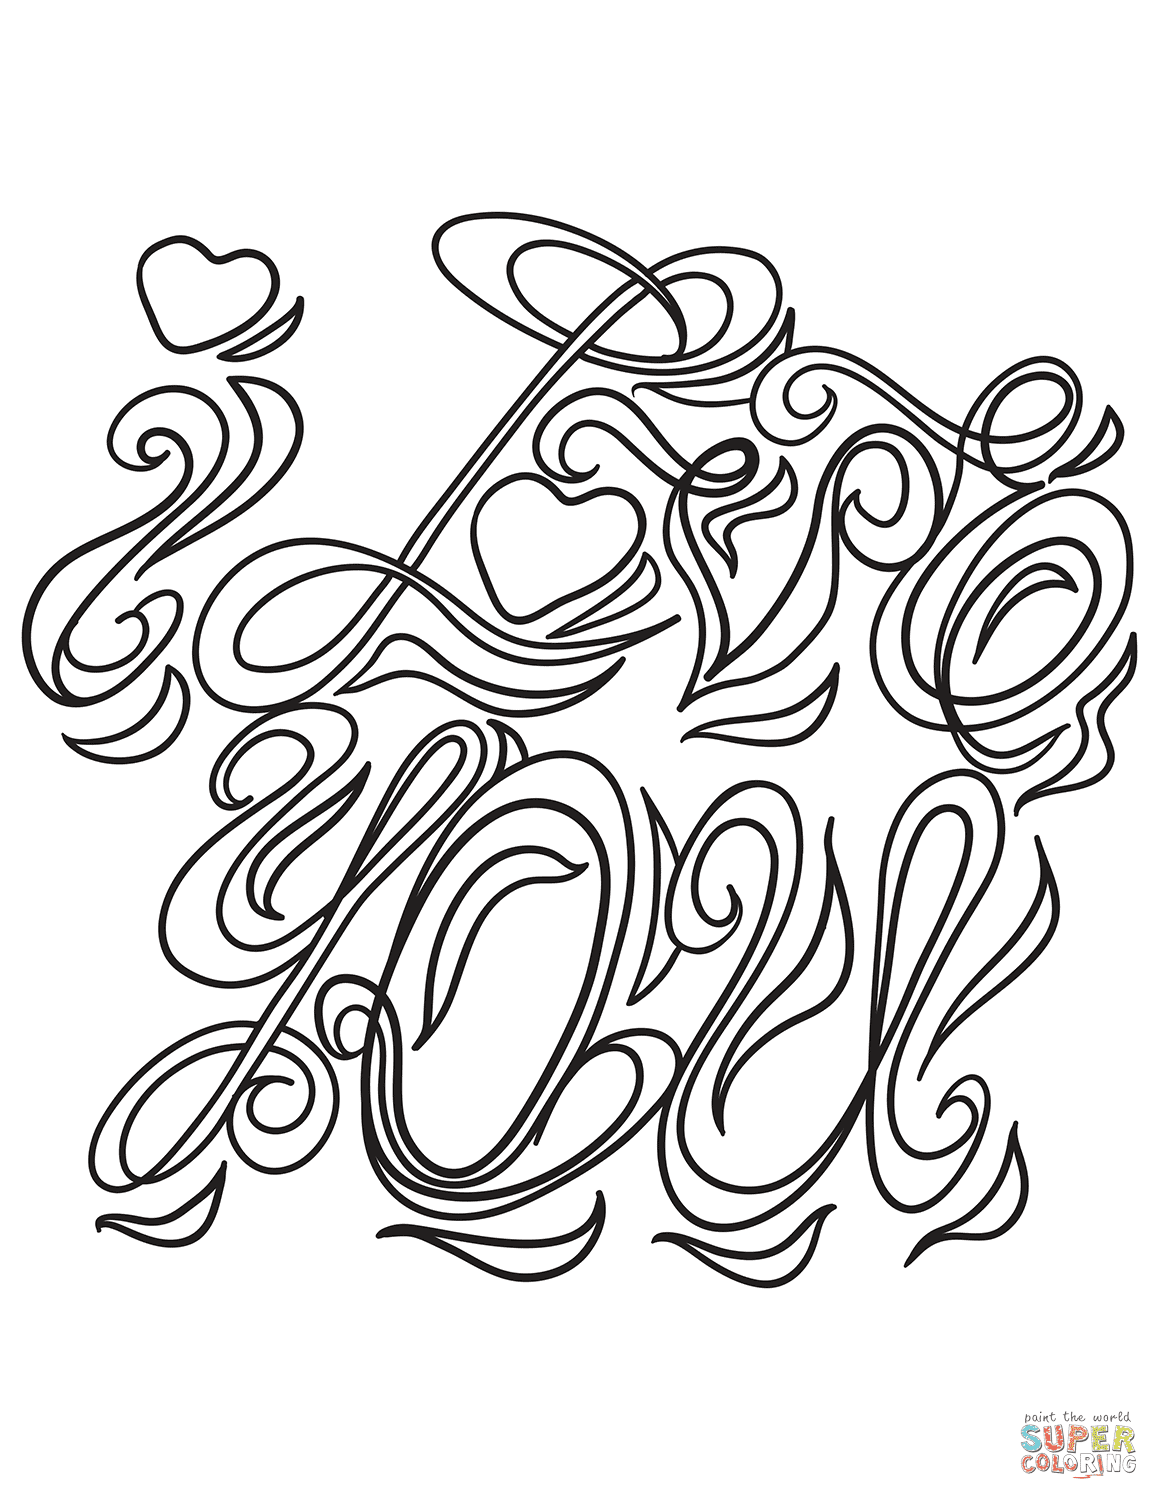 I Love You coloring page | Free Printable Coloring Pages